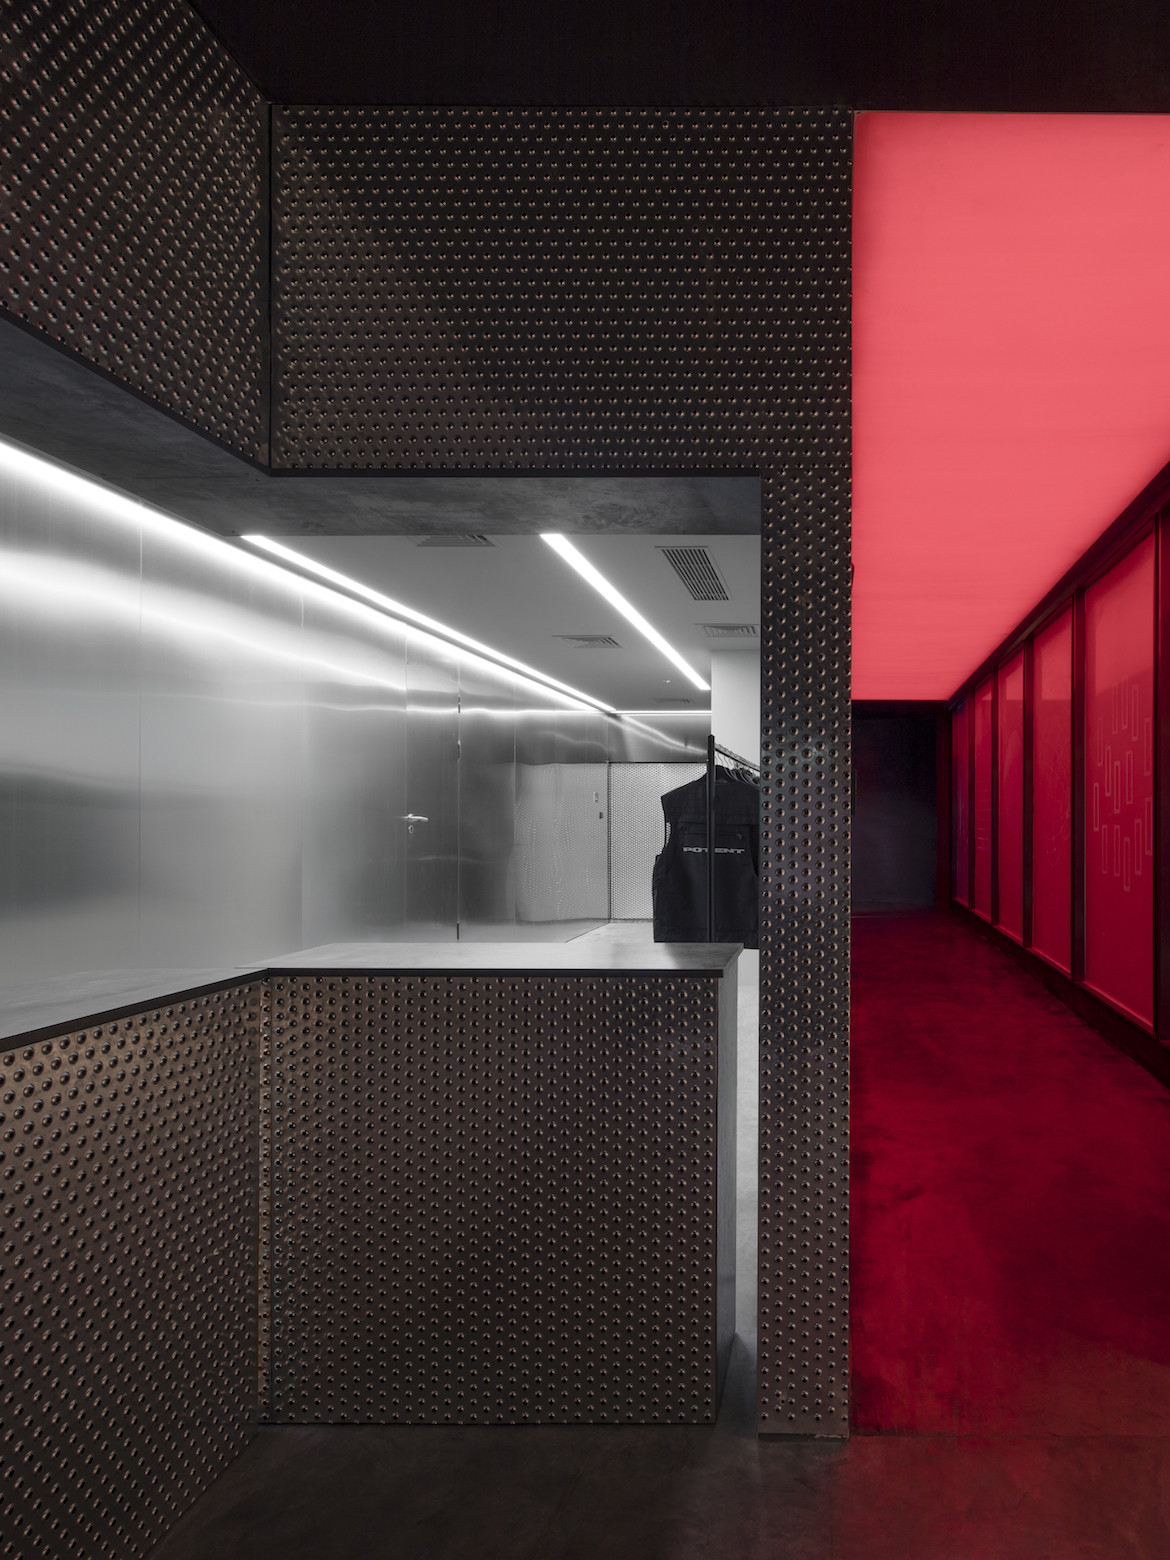 Perforated metal lines the cloakroom which is next to a red corridor leading into the club.